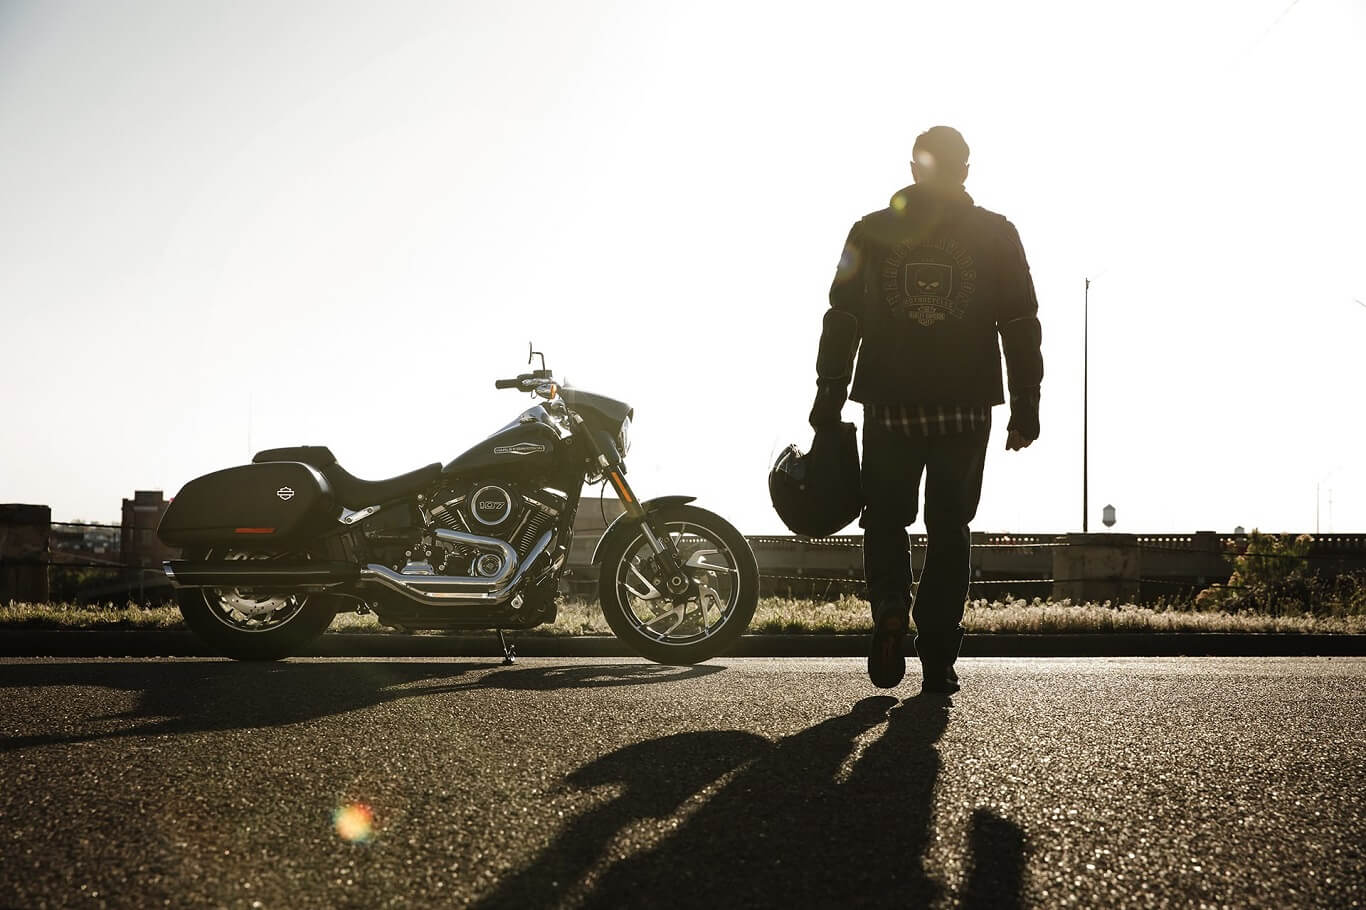 Harley Davidson extended warranty cost